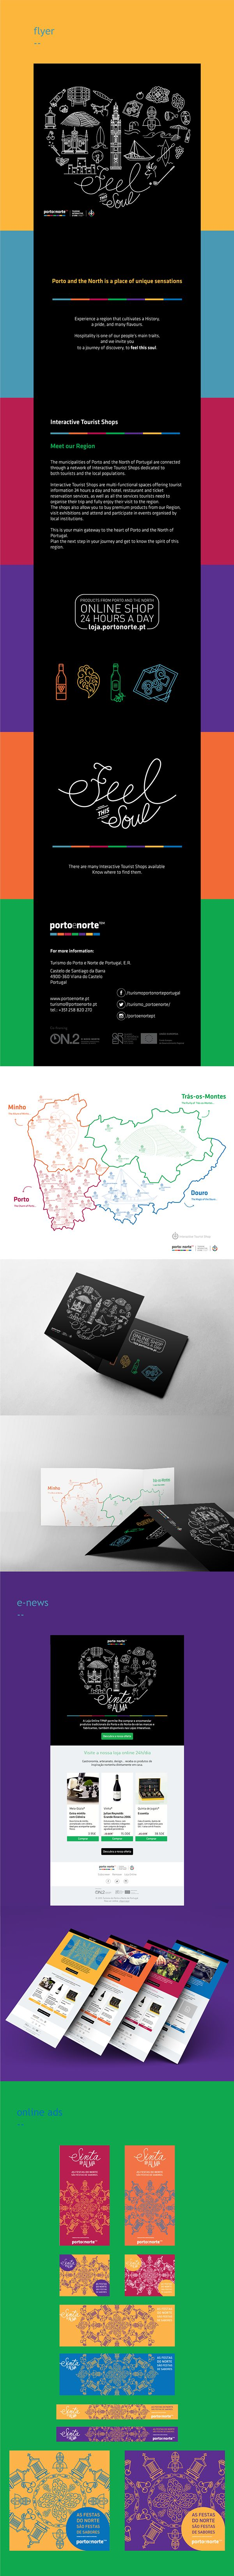 The municipalities of Porto and the North of Portugal are connected through a network of Interactive Tourist Shops dedicated to both tourists and the local populations.  This project consisted on designing a flyer with all the interactive shops information and caracteristhics in a north's Portugal map. I also designed the e-news and the online ads that were necessary to a web campaign.